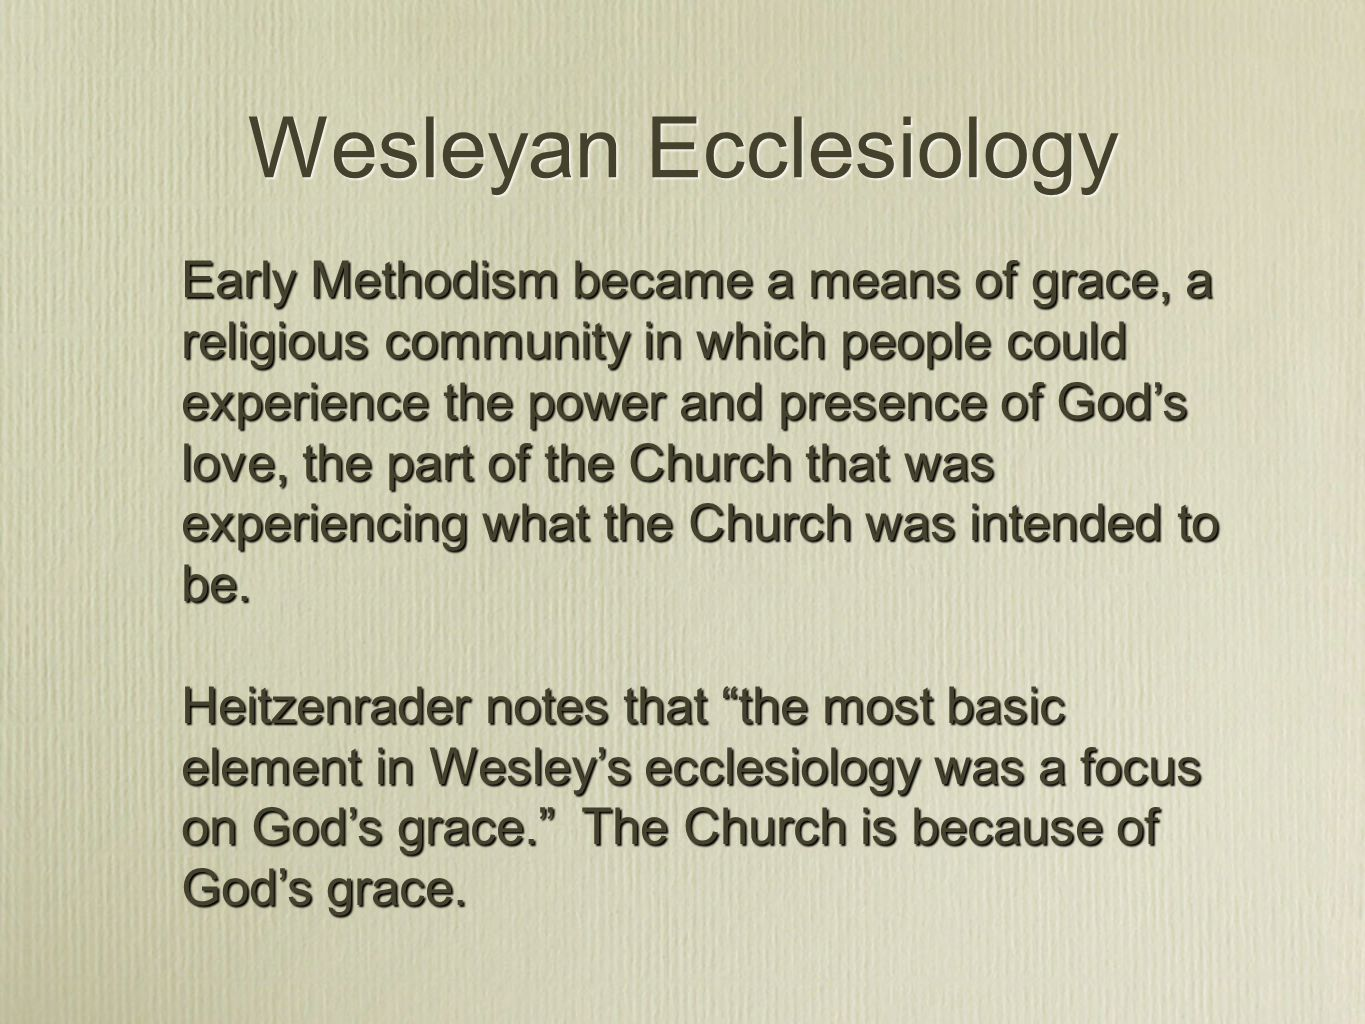 Wesleyan Ecclesiology Early Methodism became a means of grace, a religious community in which people could experience the power and presence of God's love, the part of the Church that was experiencing what the Church was intended to be.